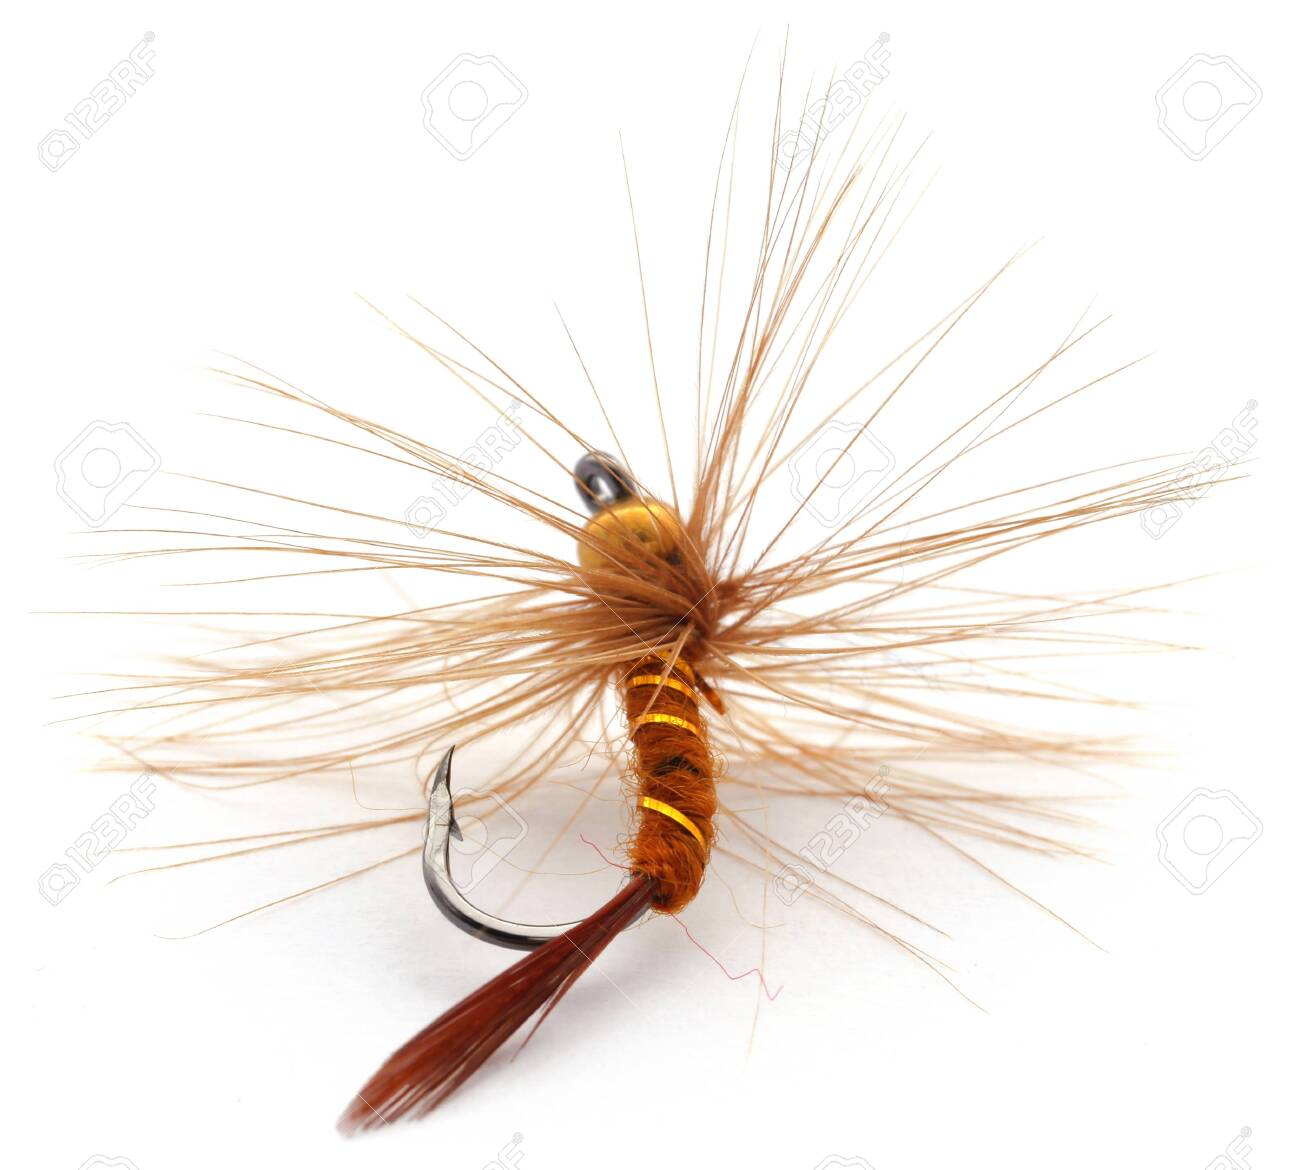 Hand made fishing fly with hook over white background - 130329973